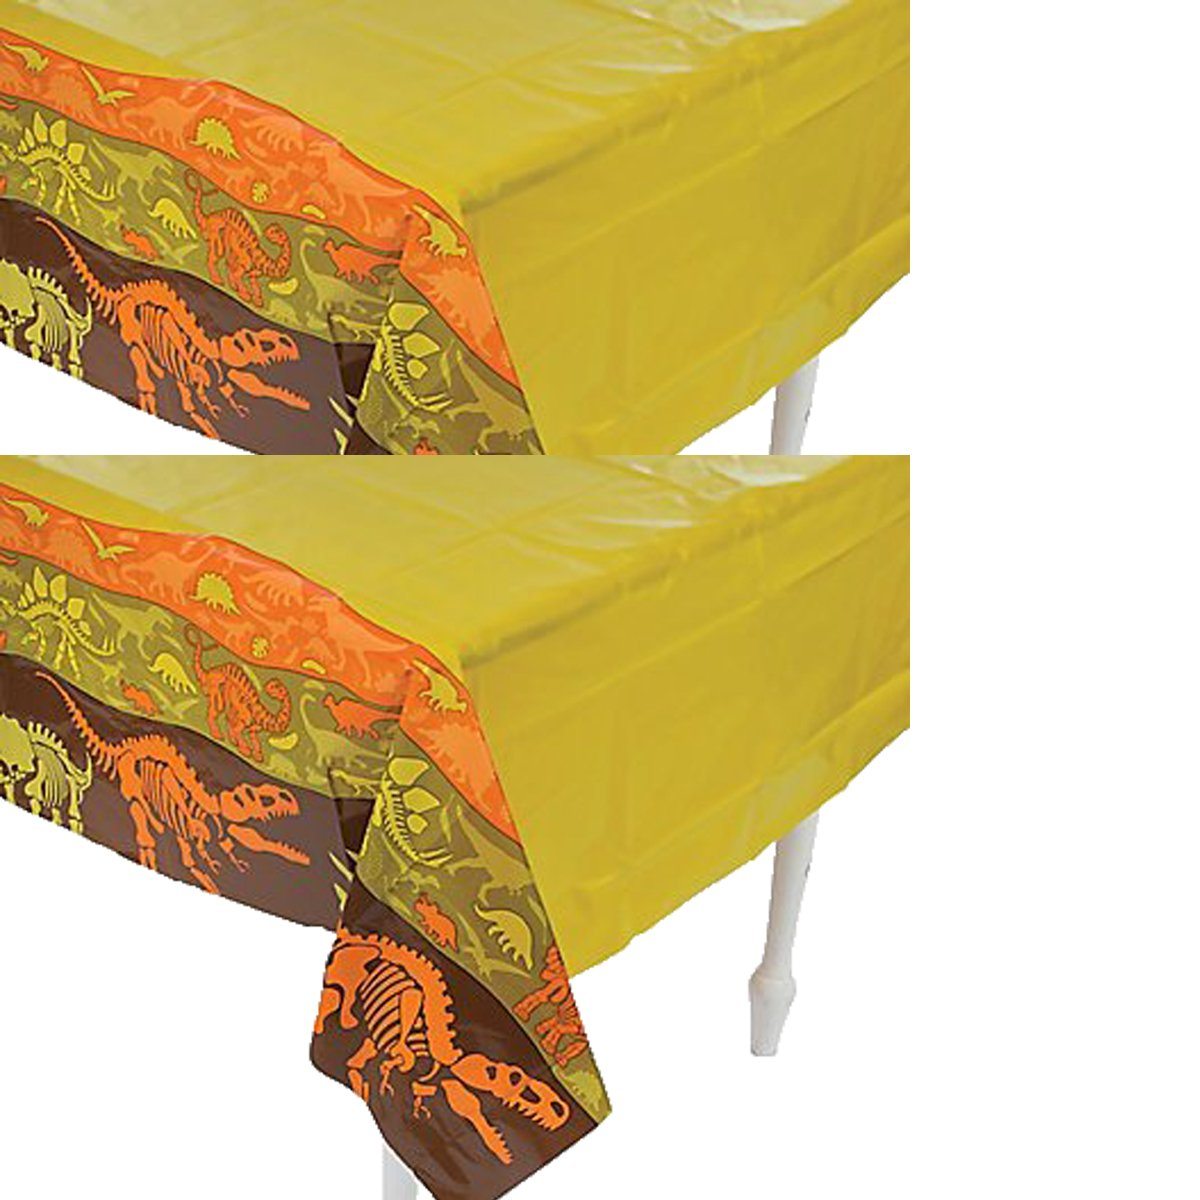 Party Supplies Inc. Plastic Dinosaur Dig Tablecloth - 54'' x 108'' (2 Pack)